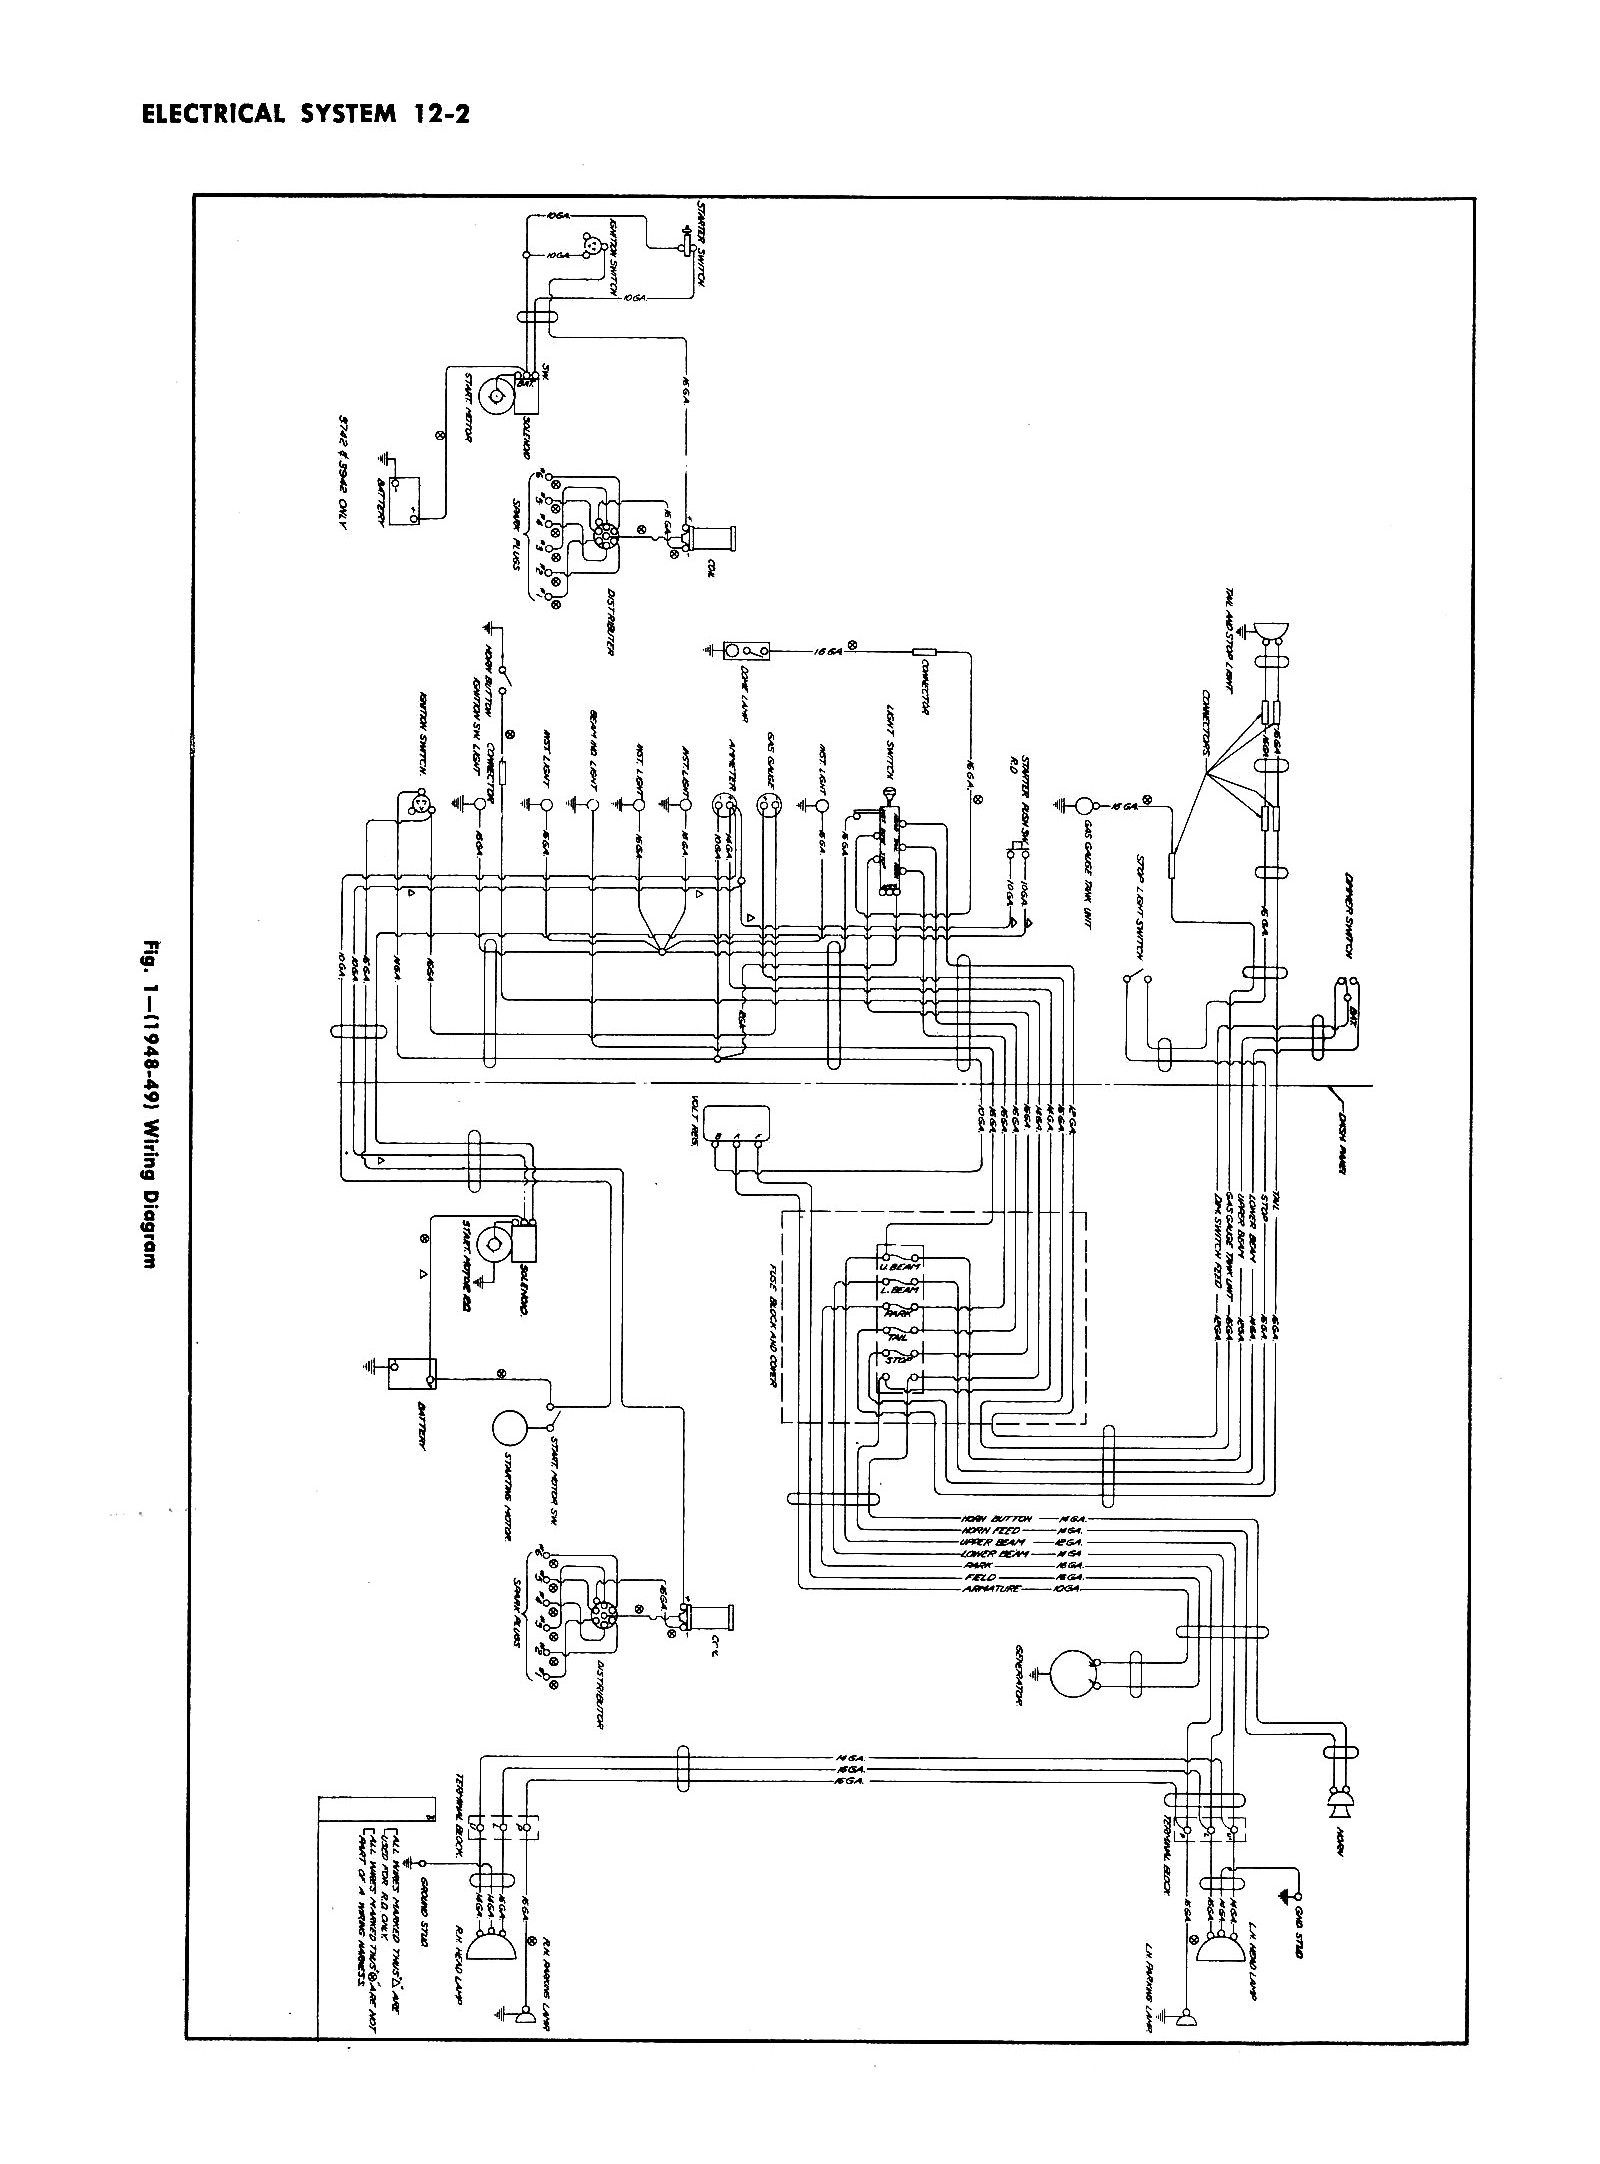 Wiring Diagram For 1959 Chevy Truck | Schematic Diagram on dolphin gauges speedometer diagram, circuit diagram, bass tracker ignition switch diagram, brake light diagram, tandem axle utility trailer diagram, 2001 jeep grand cherokee tail light diagram, tail light assembly, lamp diagram, 1996 volvo camshaft diagram, isuzu npr battery connection diagram, scotts s2048 parts diagram, dodge 1500 brake switch diagram, 2003 dodge neon transmission diagram, light switch diagram, turn signal diagram, fuse diagram, jeep 4.0 vacuum diagram, chevy tail light diagram, tail light cover, led light diagram,